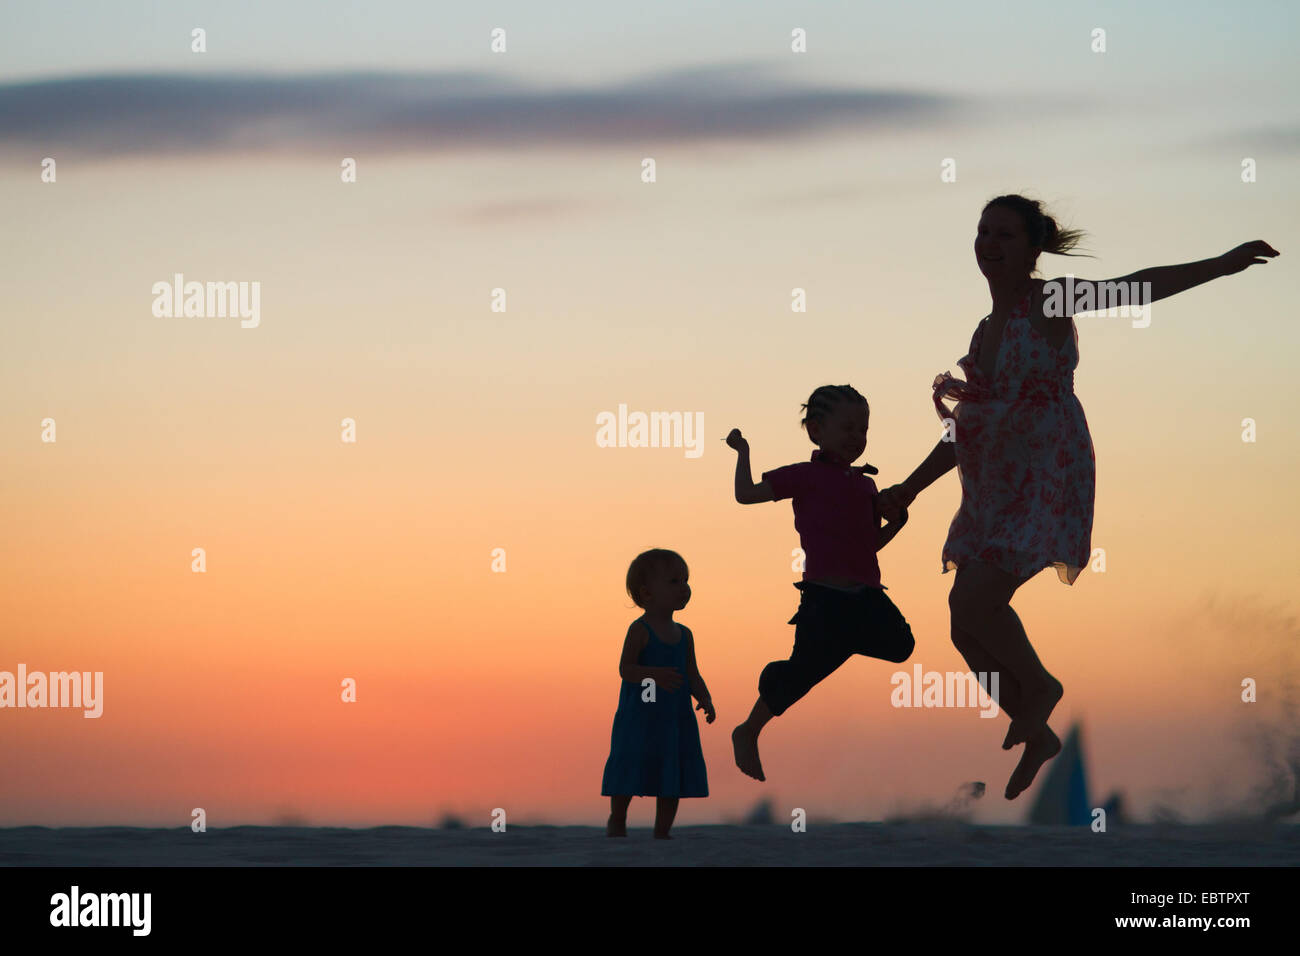 silhouettes of mother and two children jumping on beach at sunset - Stock Image